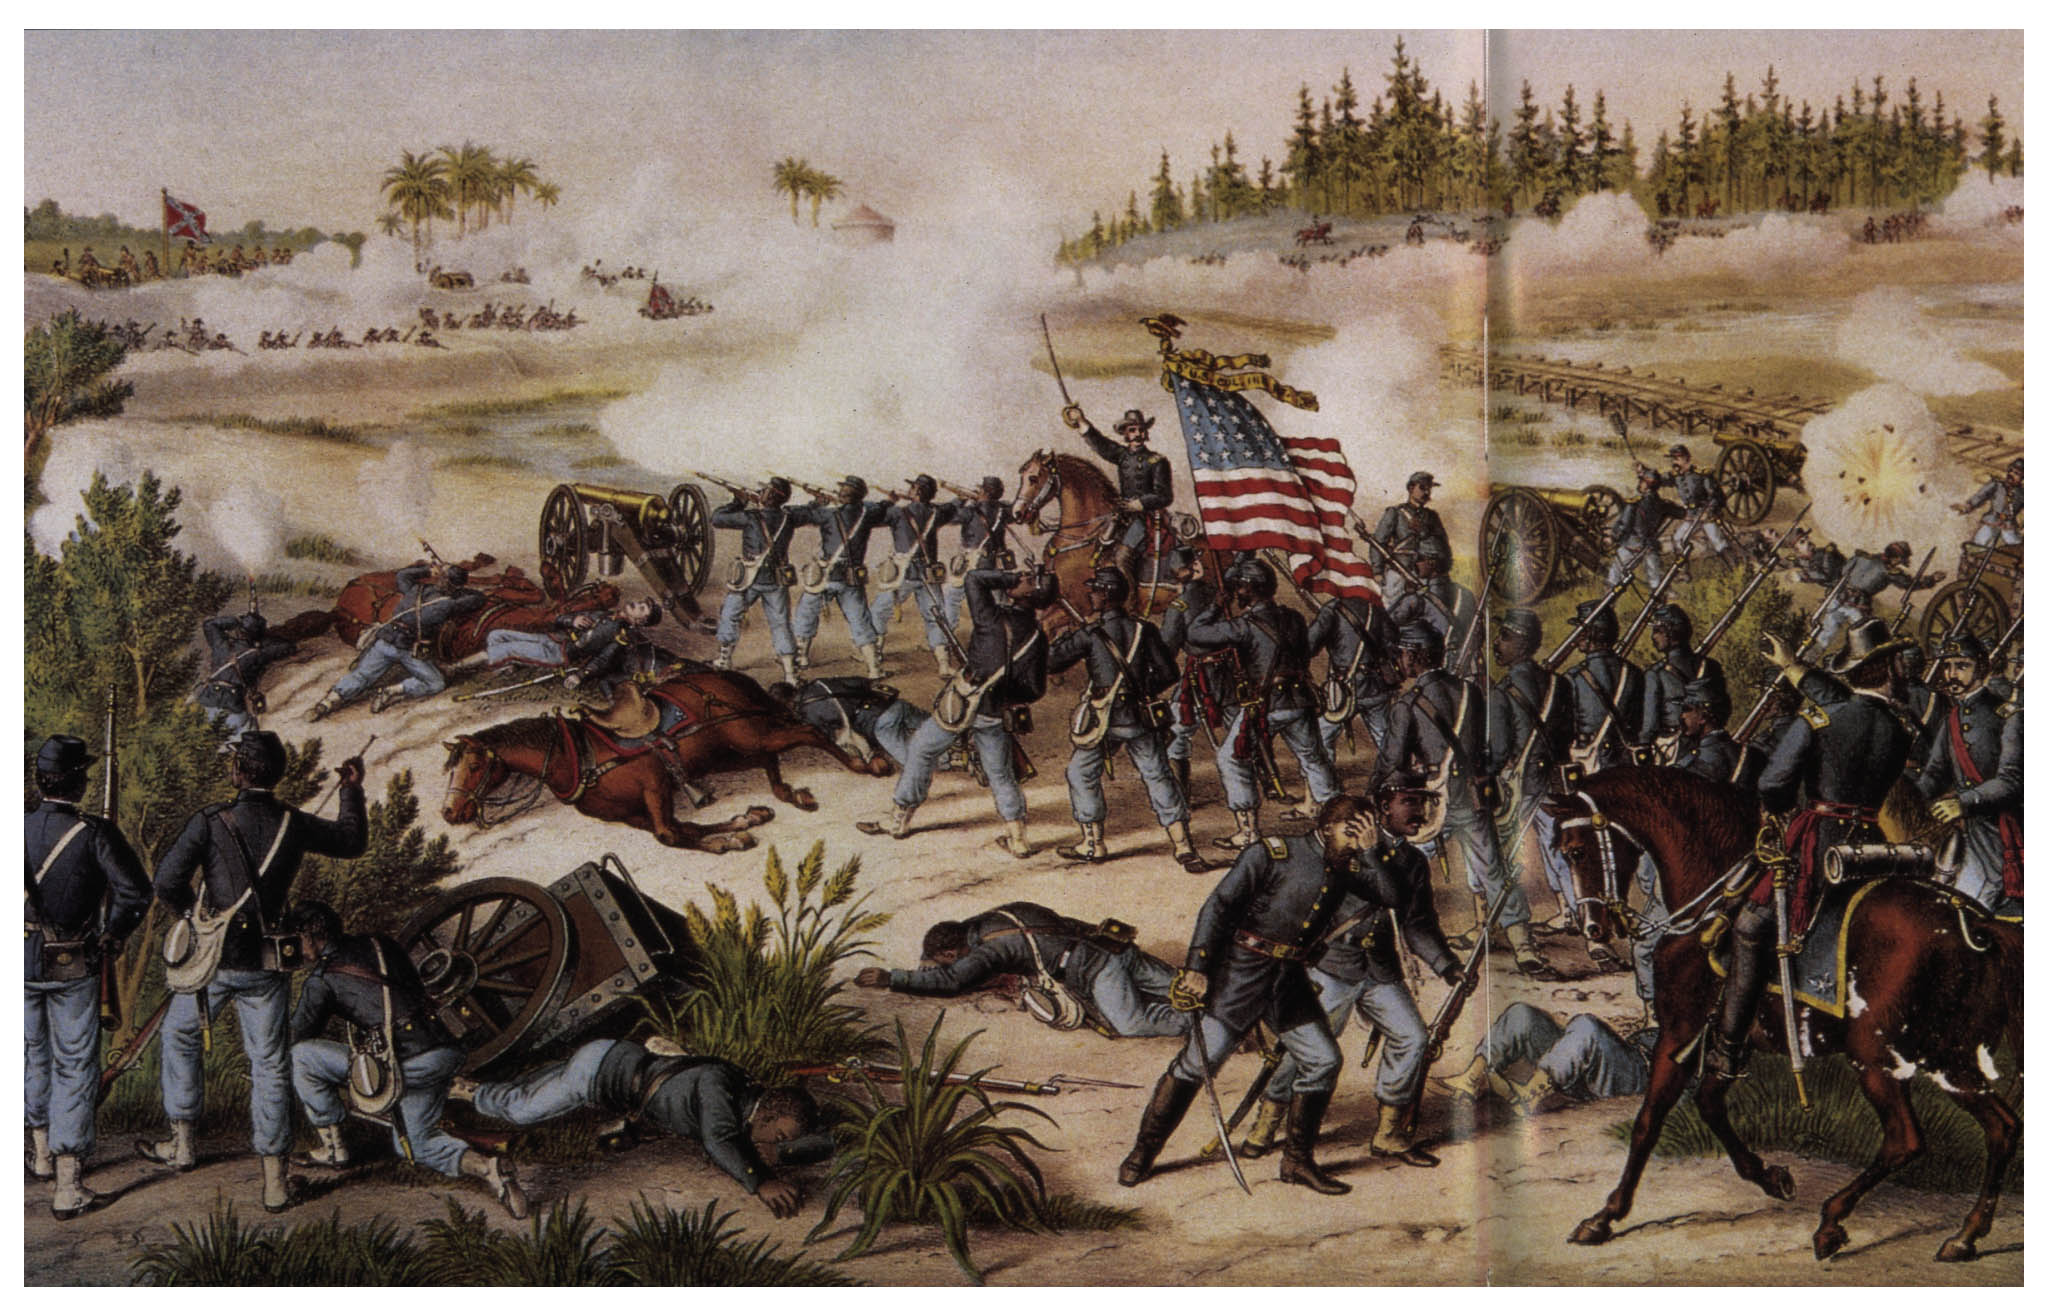 Federal troops go into action at the Battle of Olustee, 20th February 1864 (History of the 8th USCT)